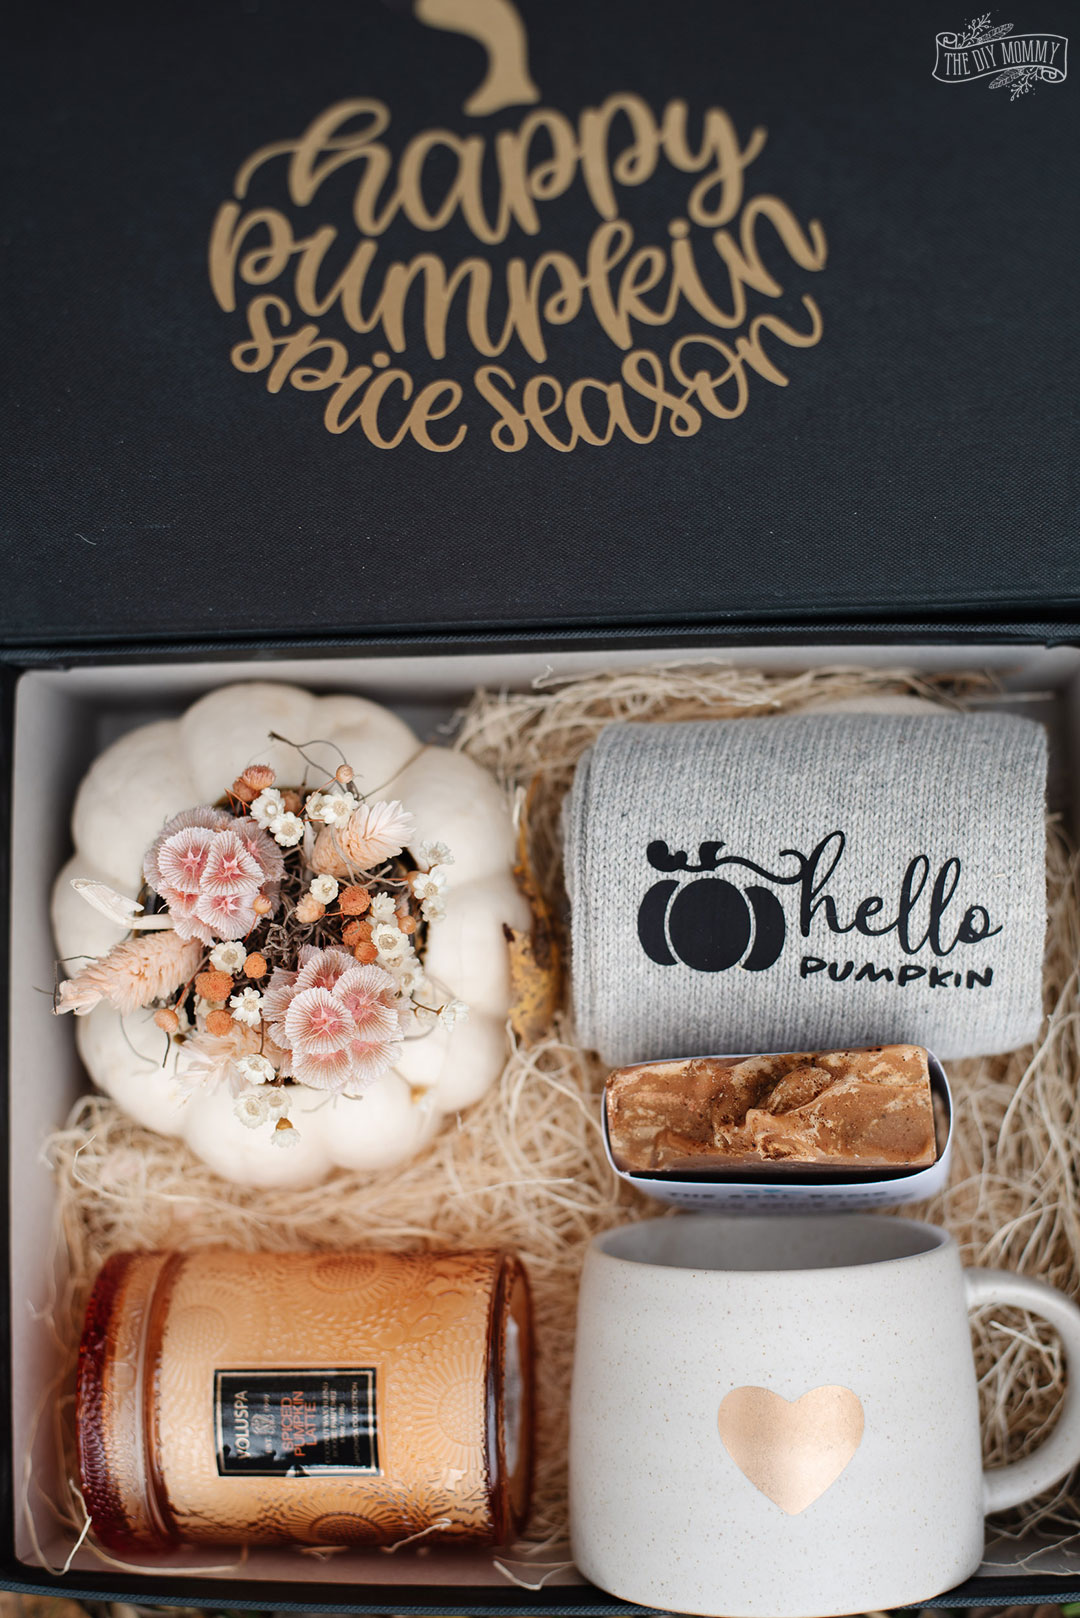 For a quick and simple gift idea, make a beautiful pumpkin spice gift box. It's a cute and creative DIY craft to make for a loved one this season.